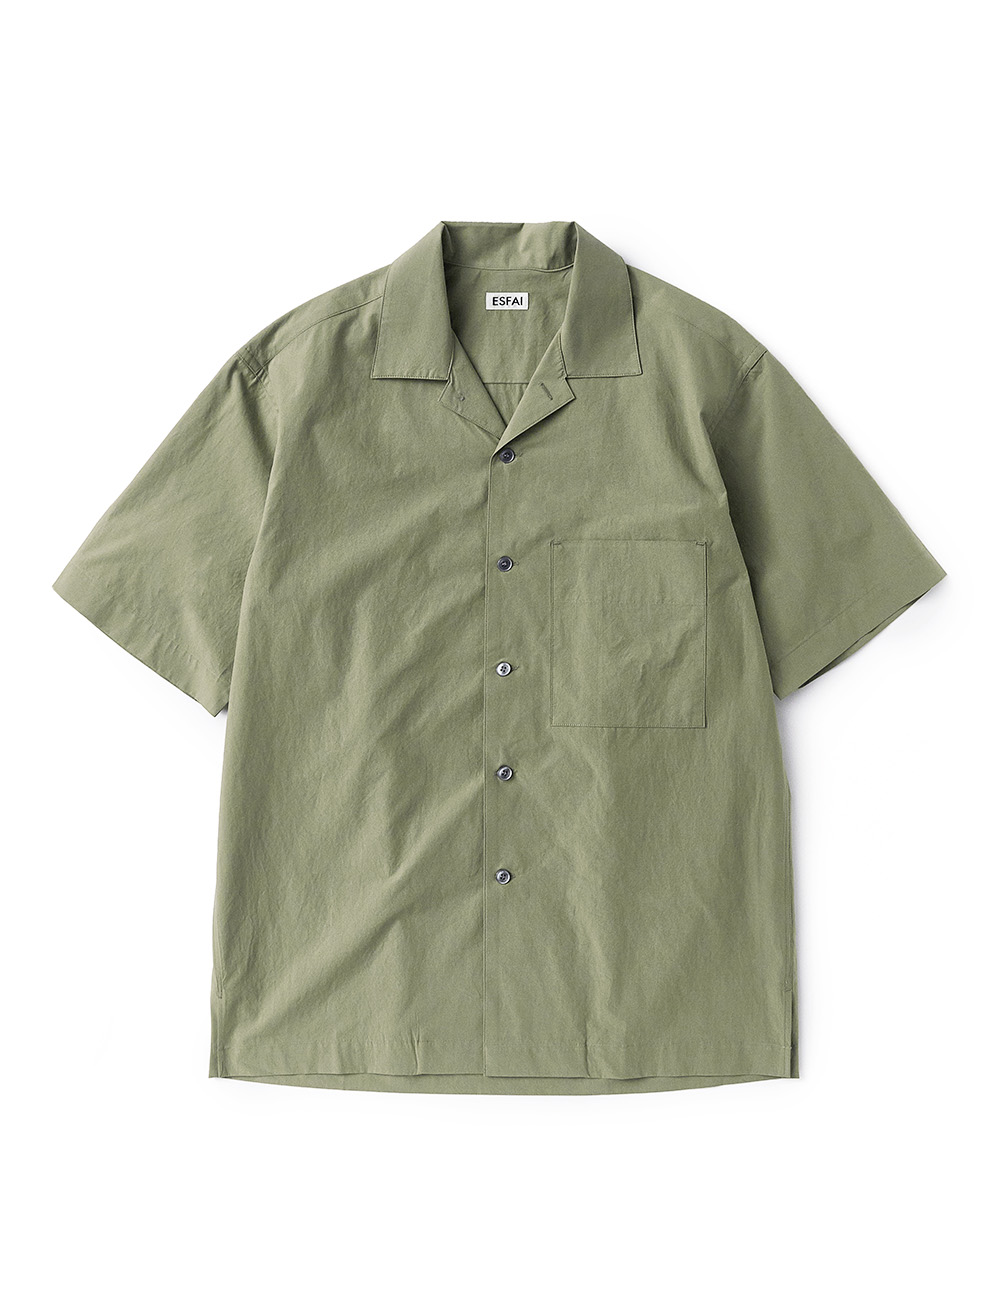 [ESFAI] sue02 summer standard shirts (Green)